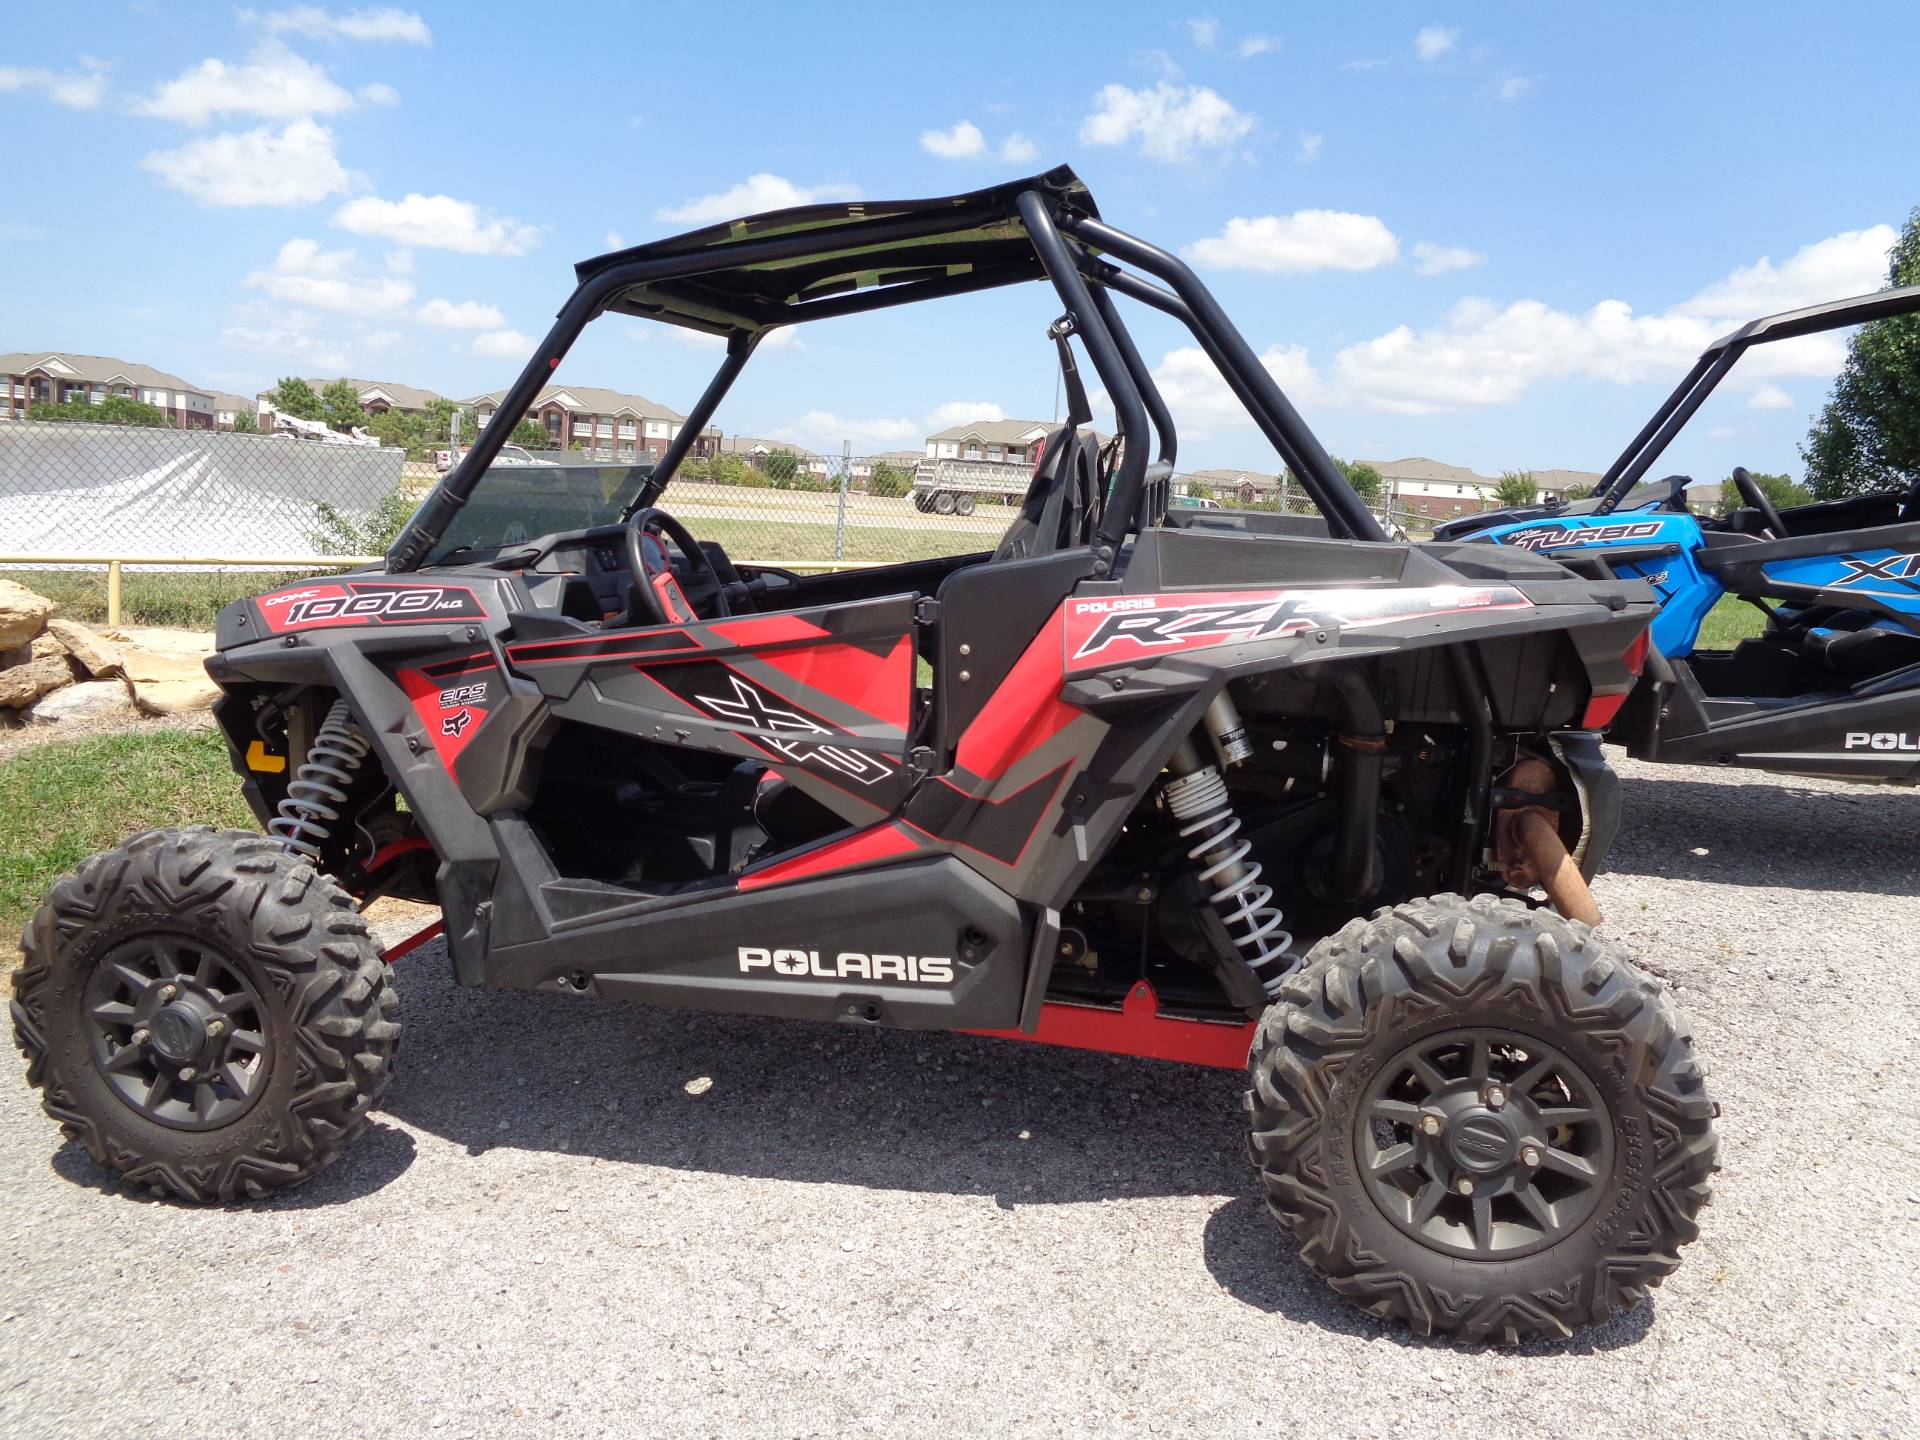 2017 Polaris RZR XP 1000 EPS in Broken Arrow, Oklahoma - Photo 1